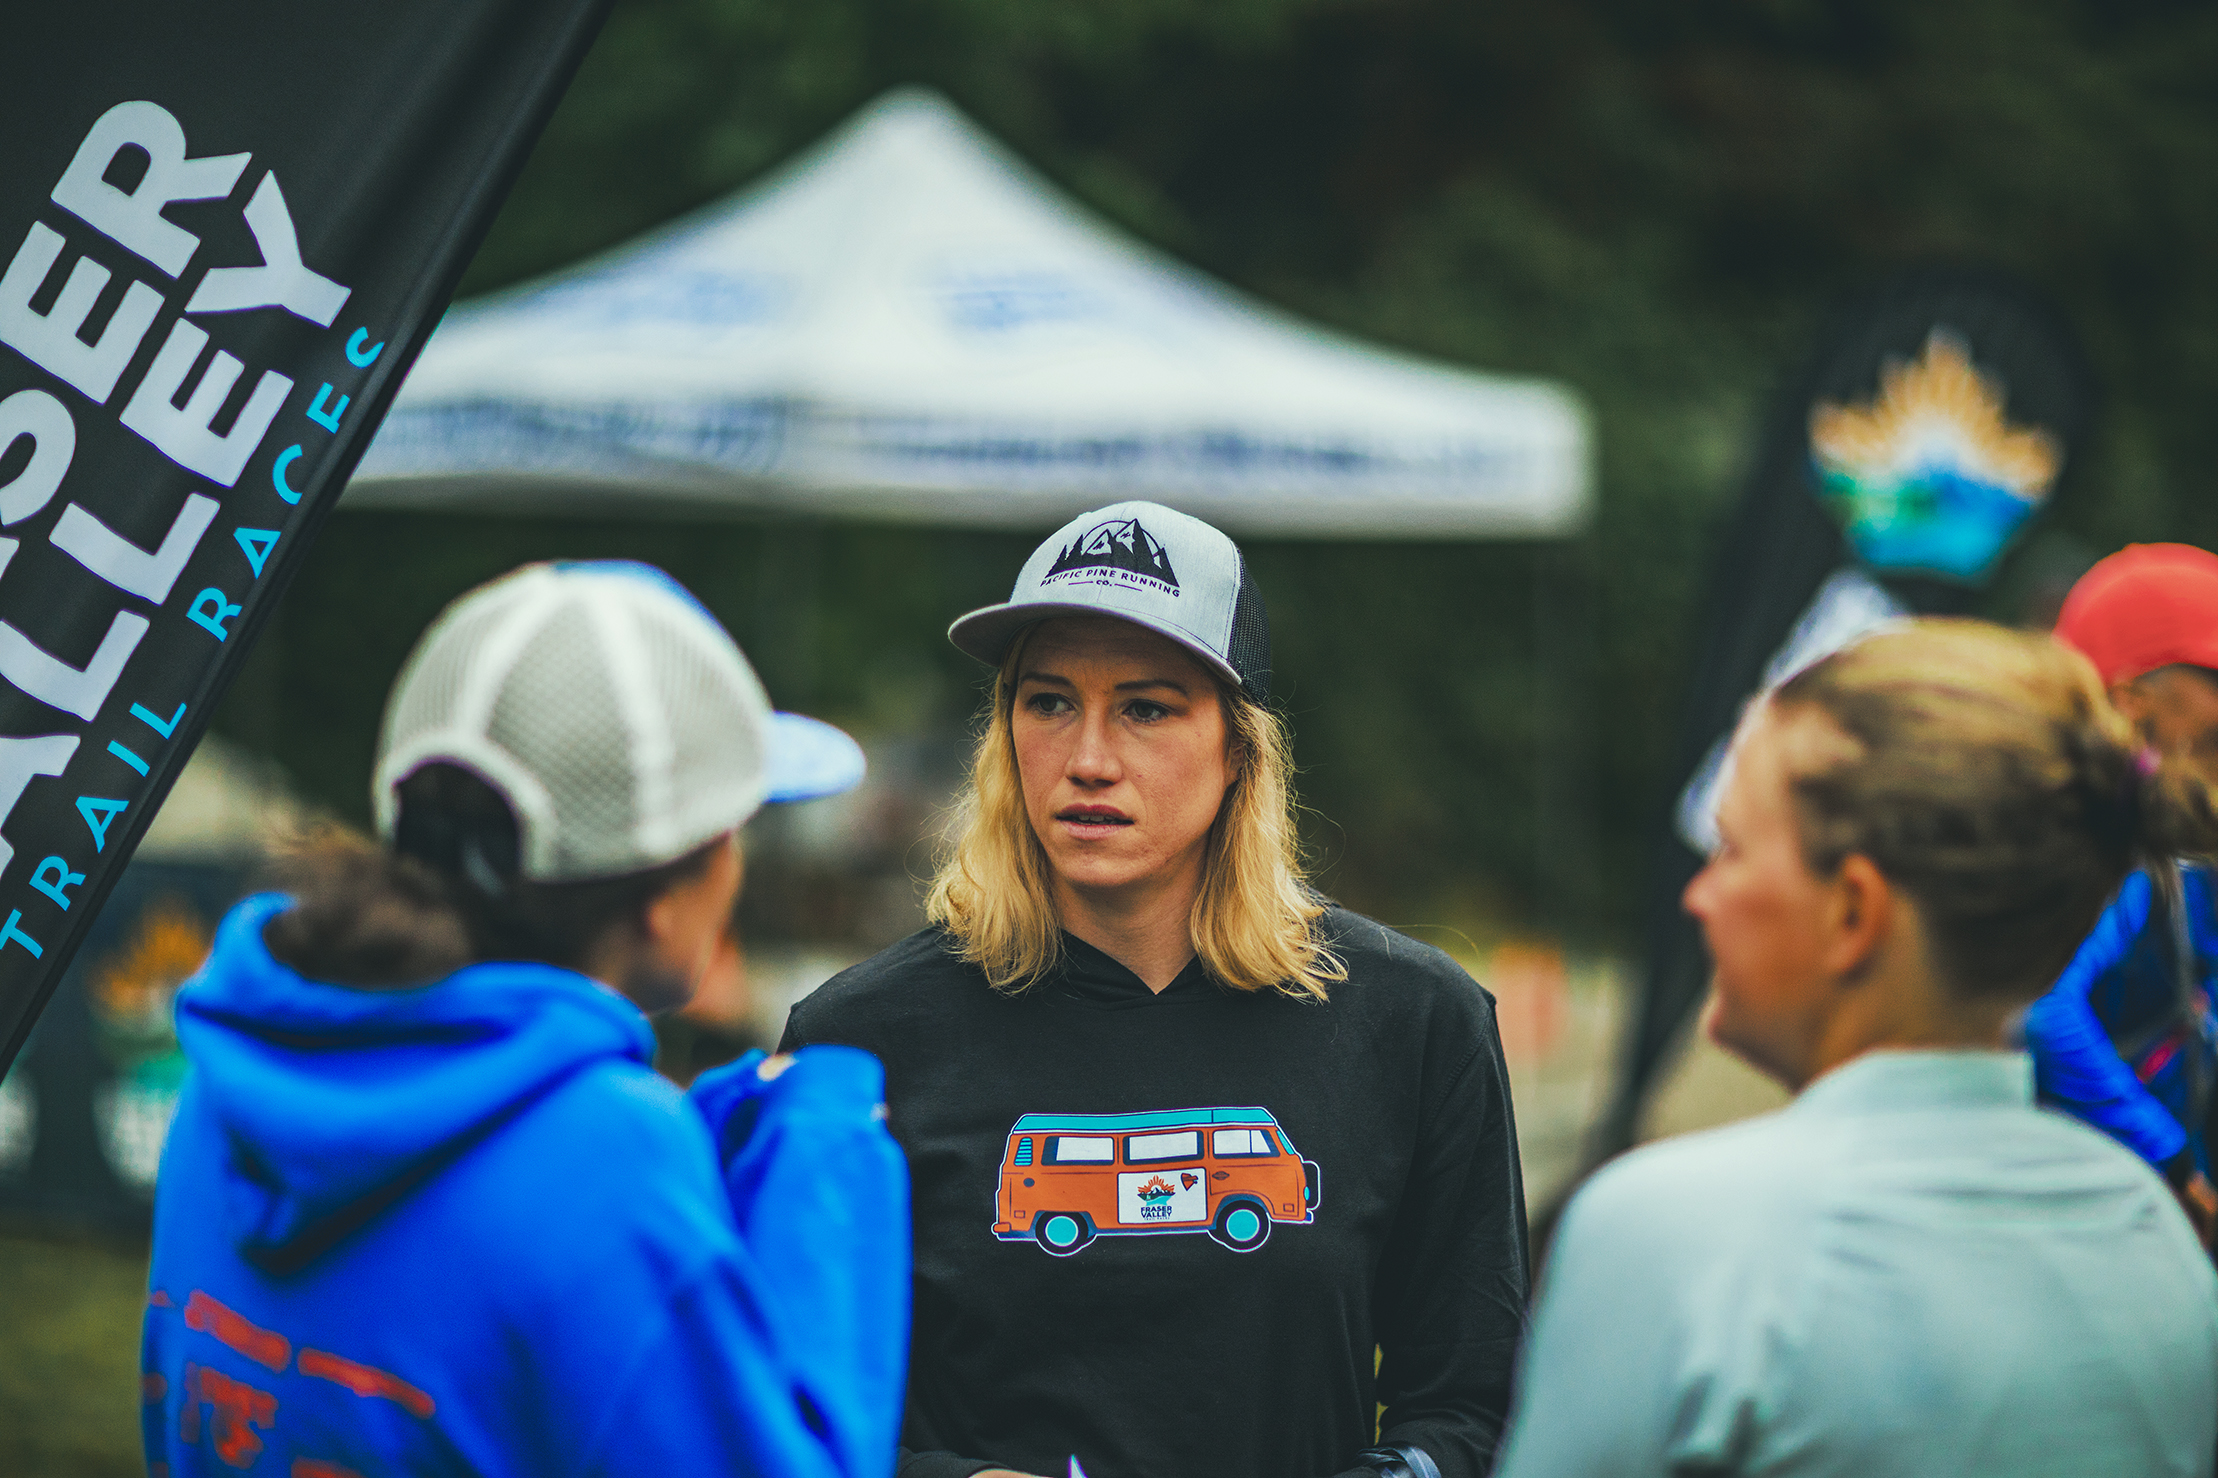 Fraser Valley Trail Races - Bear Mountain - IMG2_2400 by  Brice Ferre Studio - Vancouver Portrait Adventure and Athlete Photographer.jpg